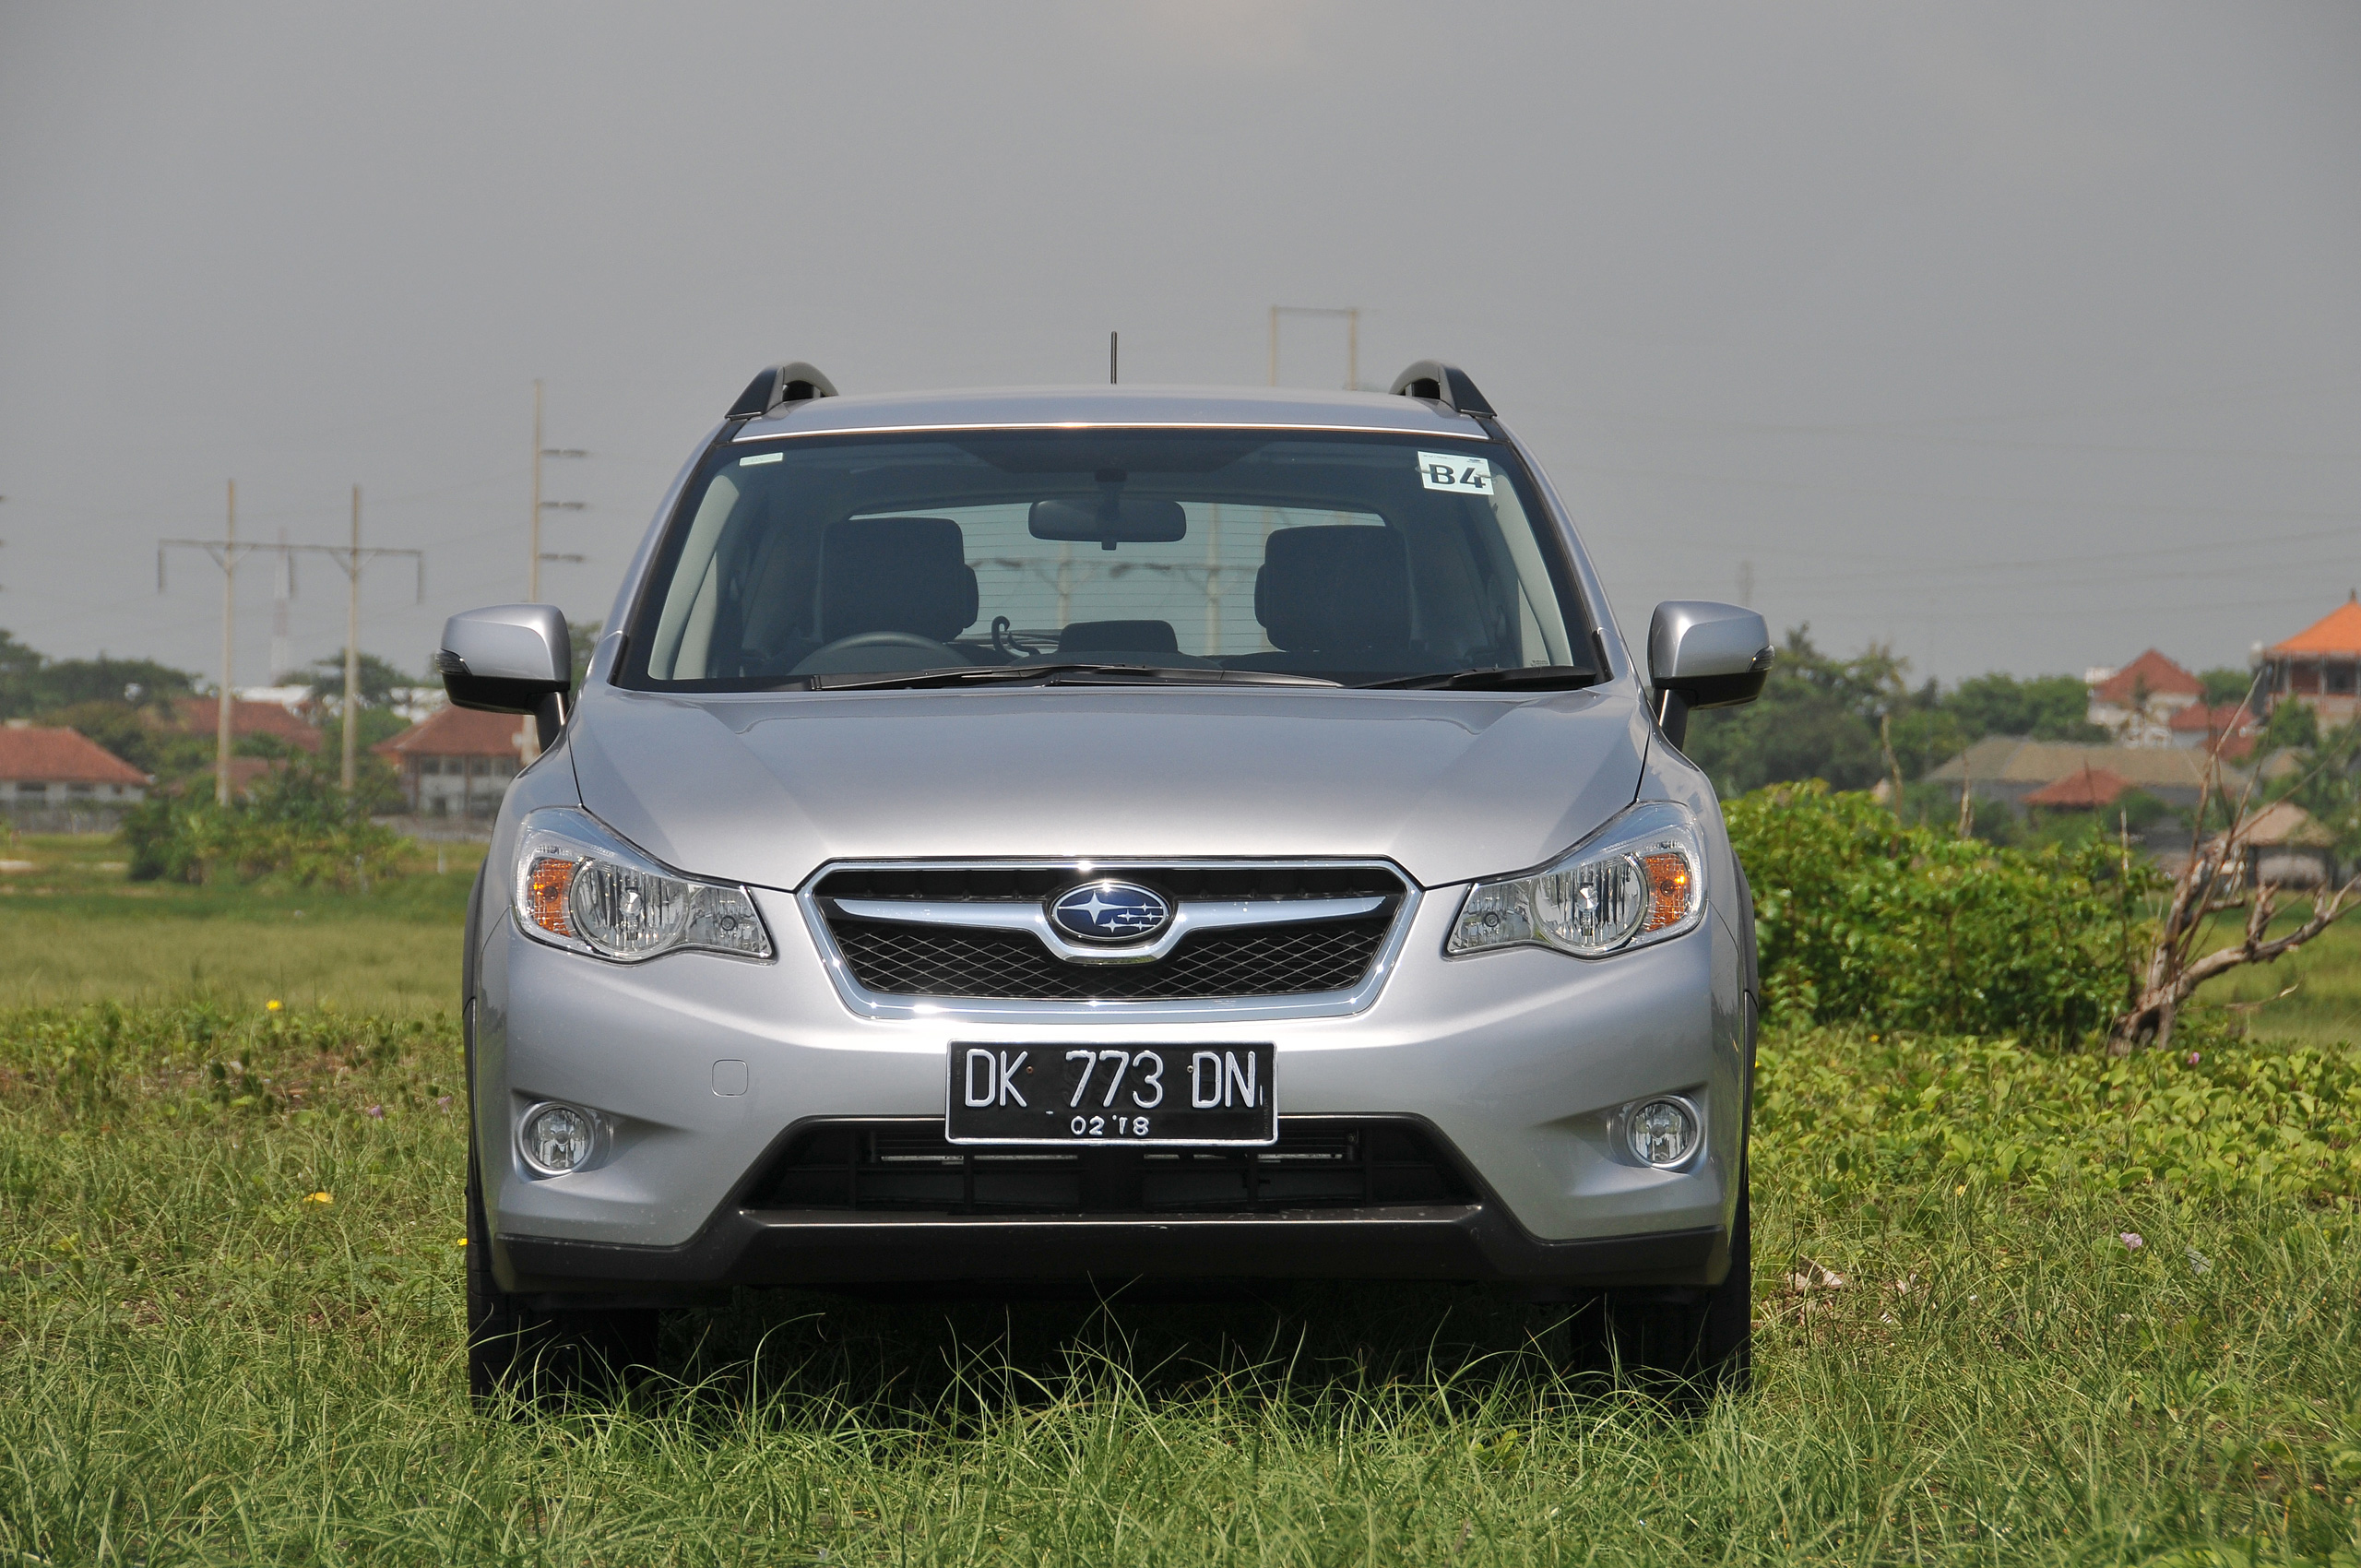 driven new subaru xv crossover tested in bali image. Black Bedroom Furniture Sets. Home Design Ideas